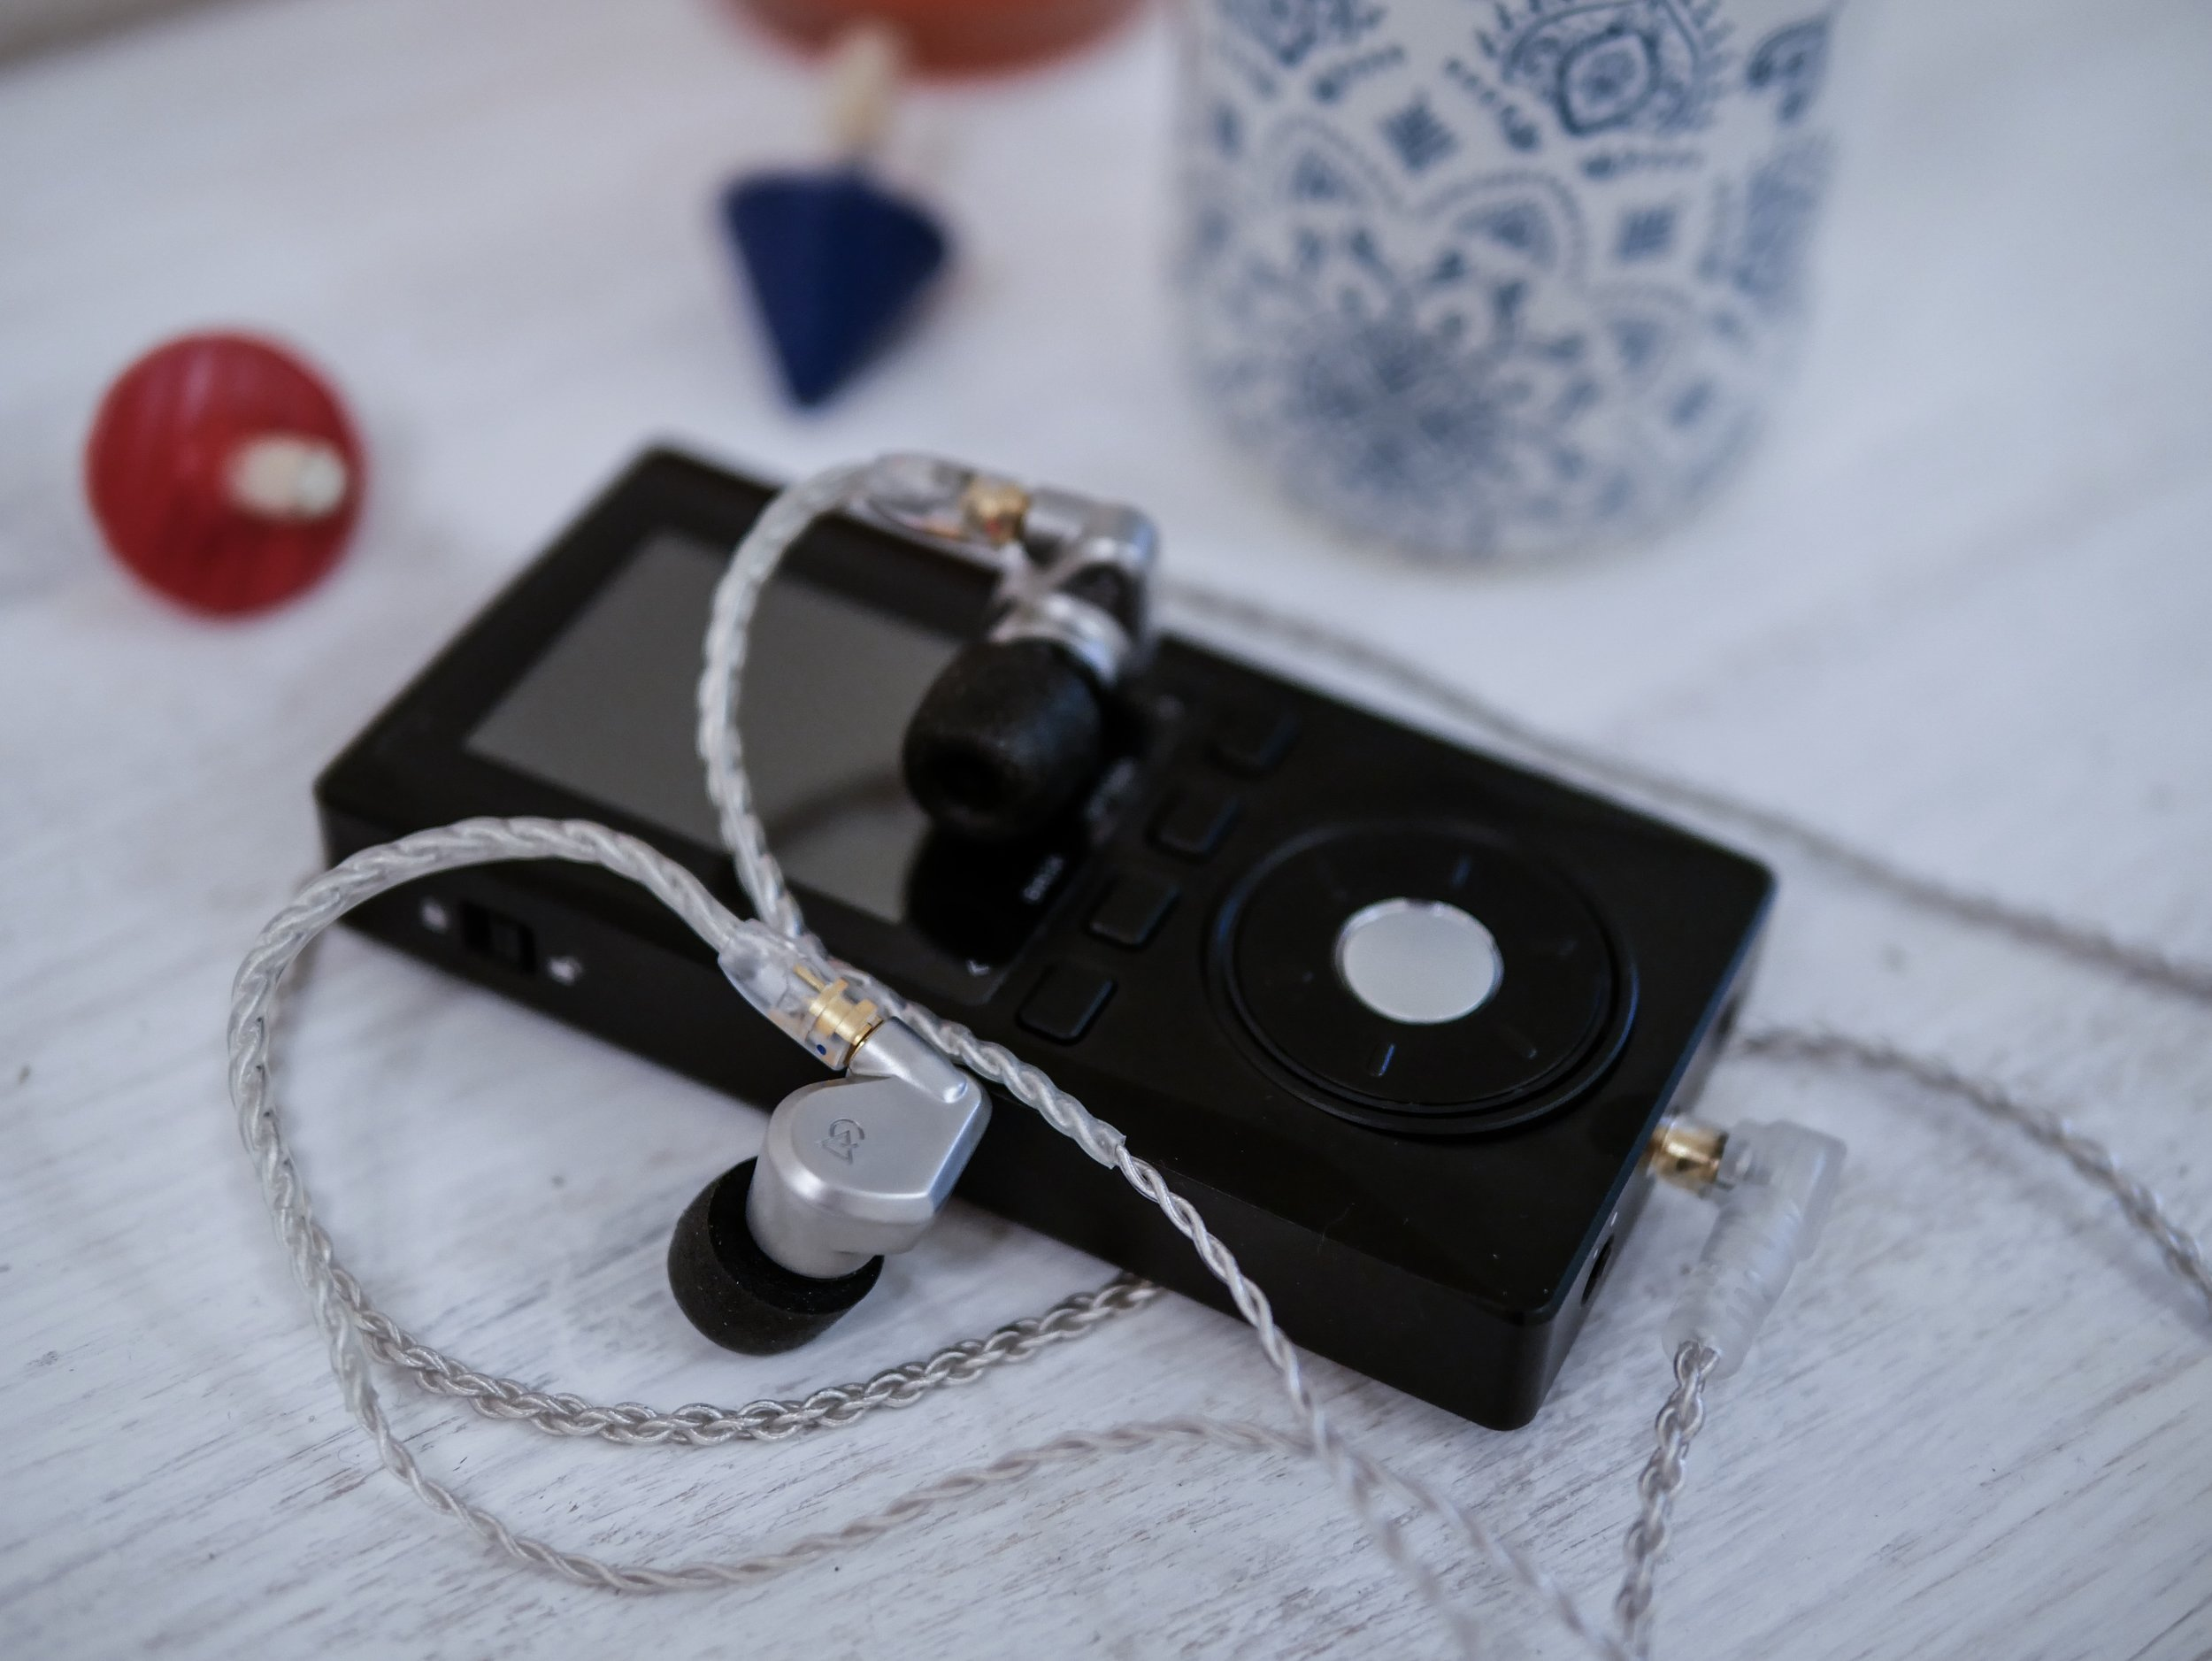 Xduoo X10 high resolution music player with some Campfire Audio earphones.